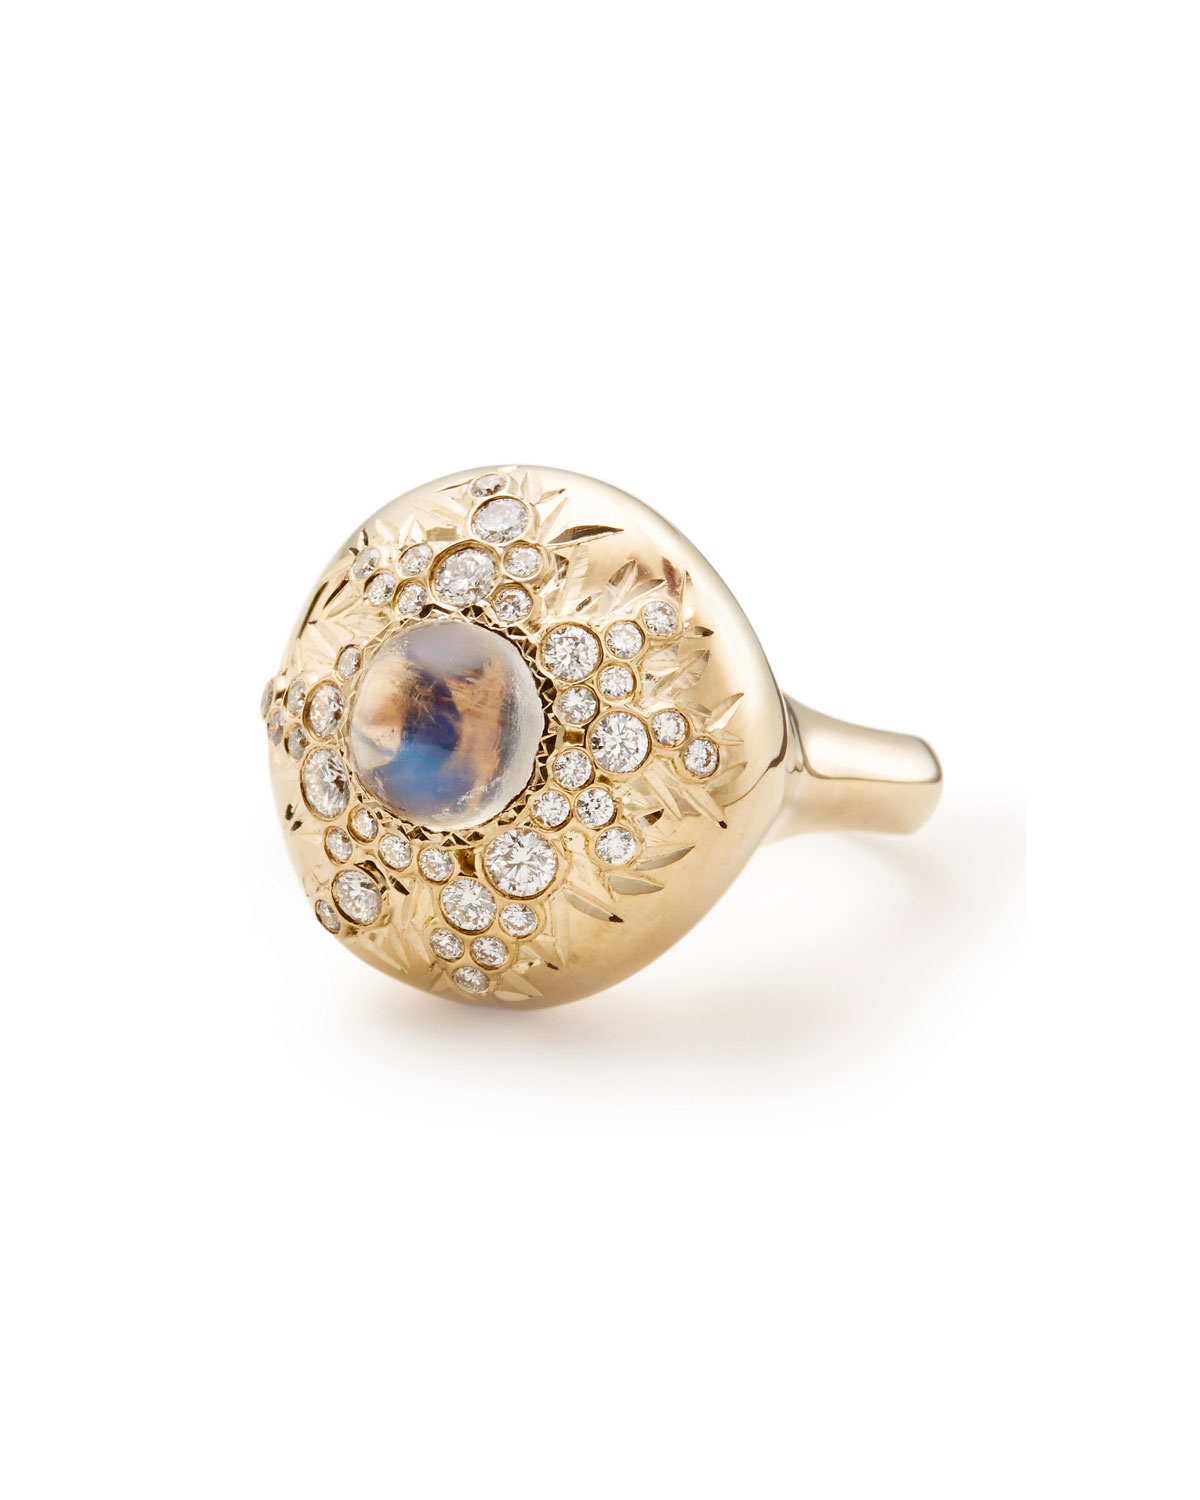 ADAM FOSTER FINE JEWELRY 18K Gold Moonstone & Diamond Blister Ring